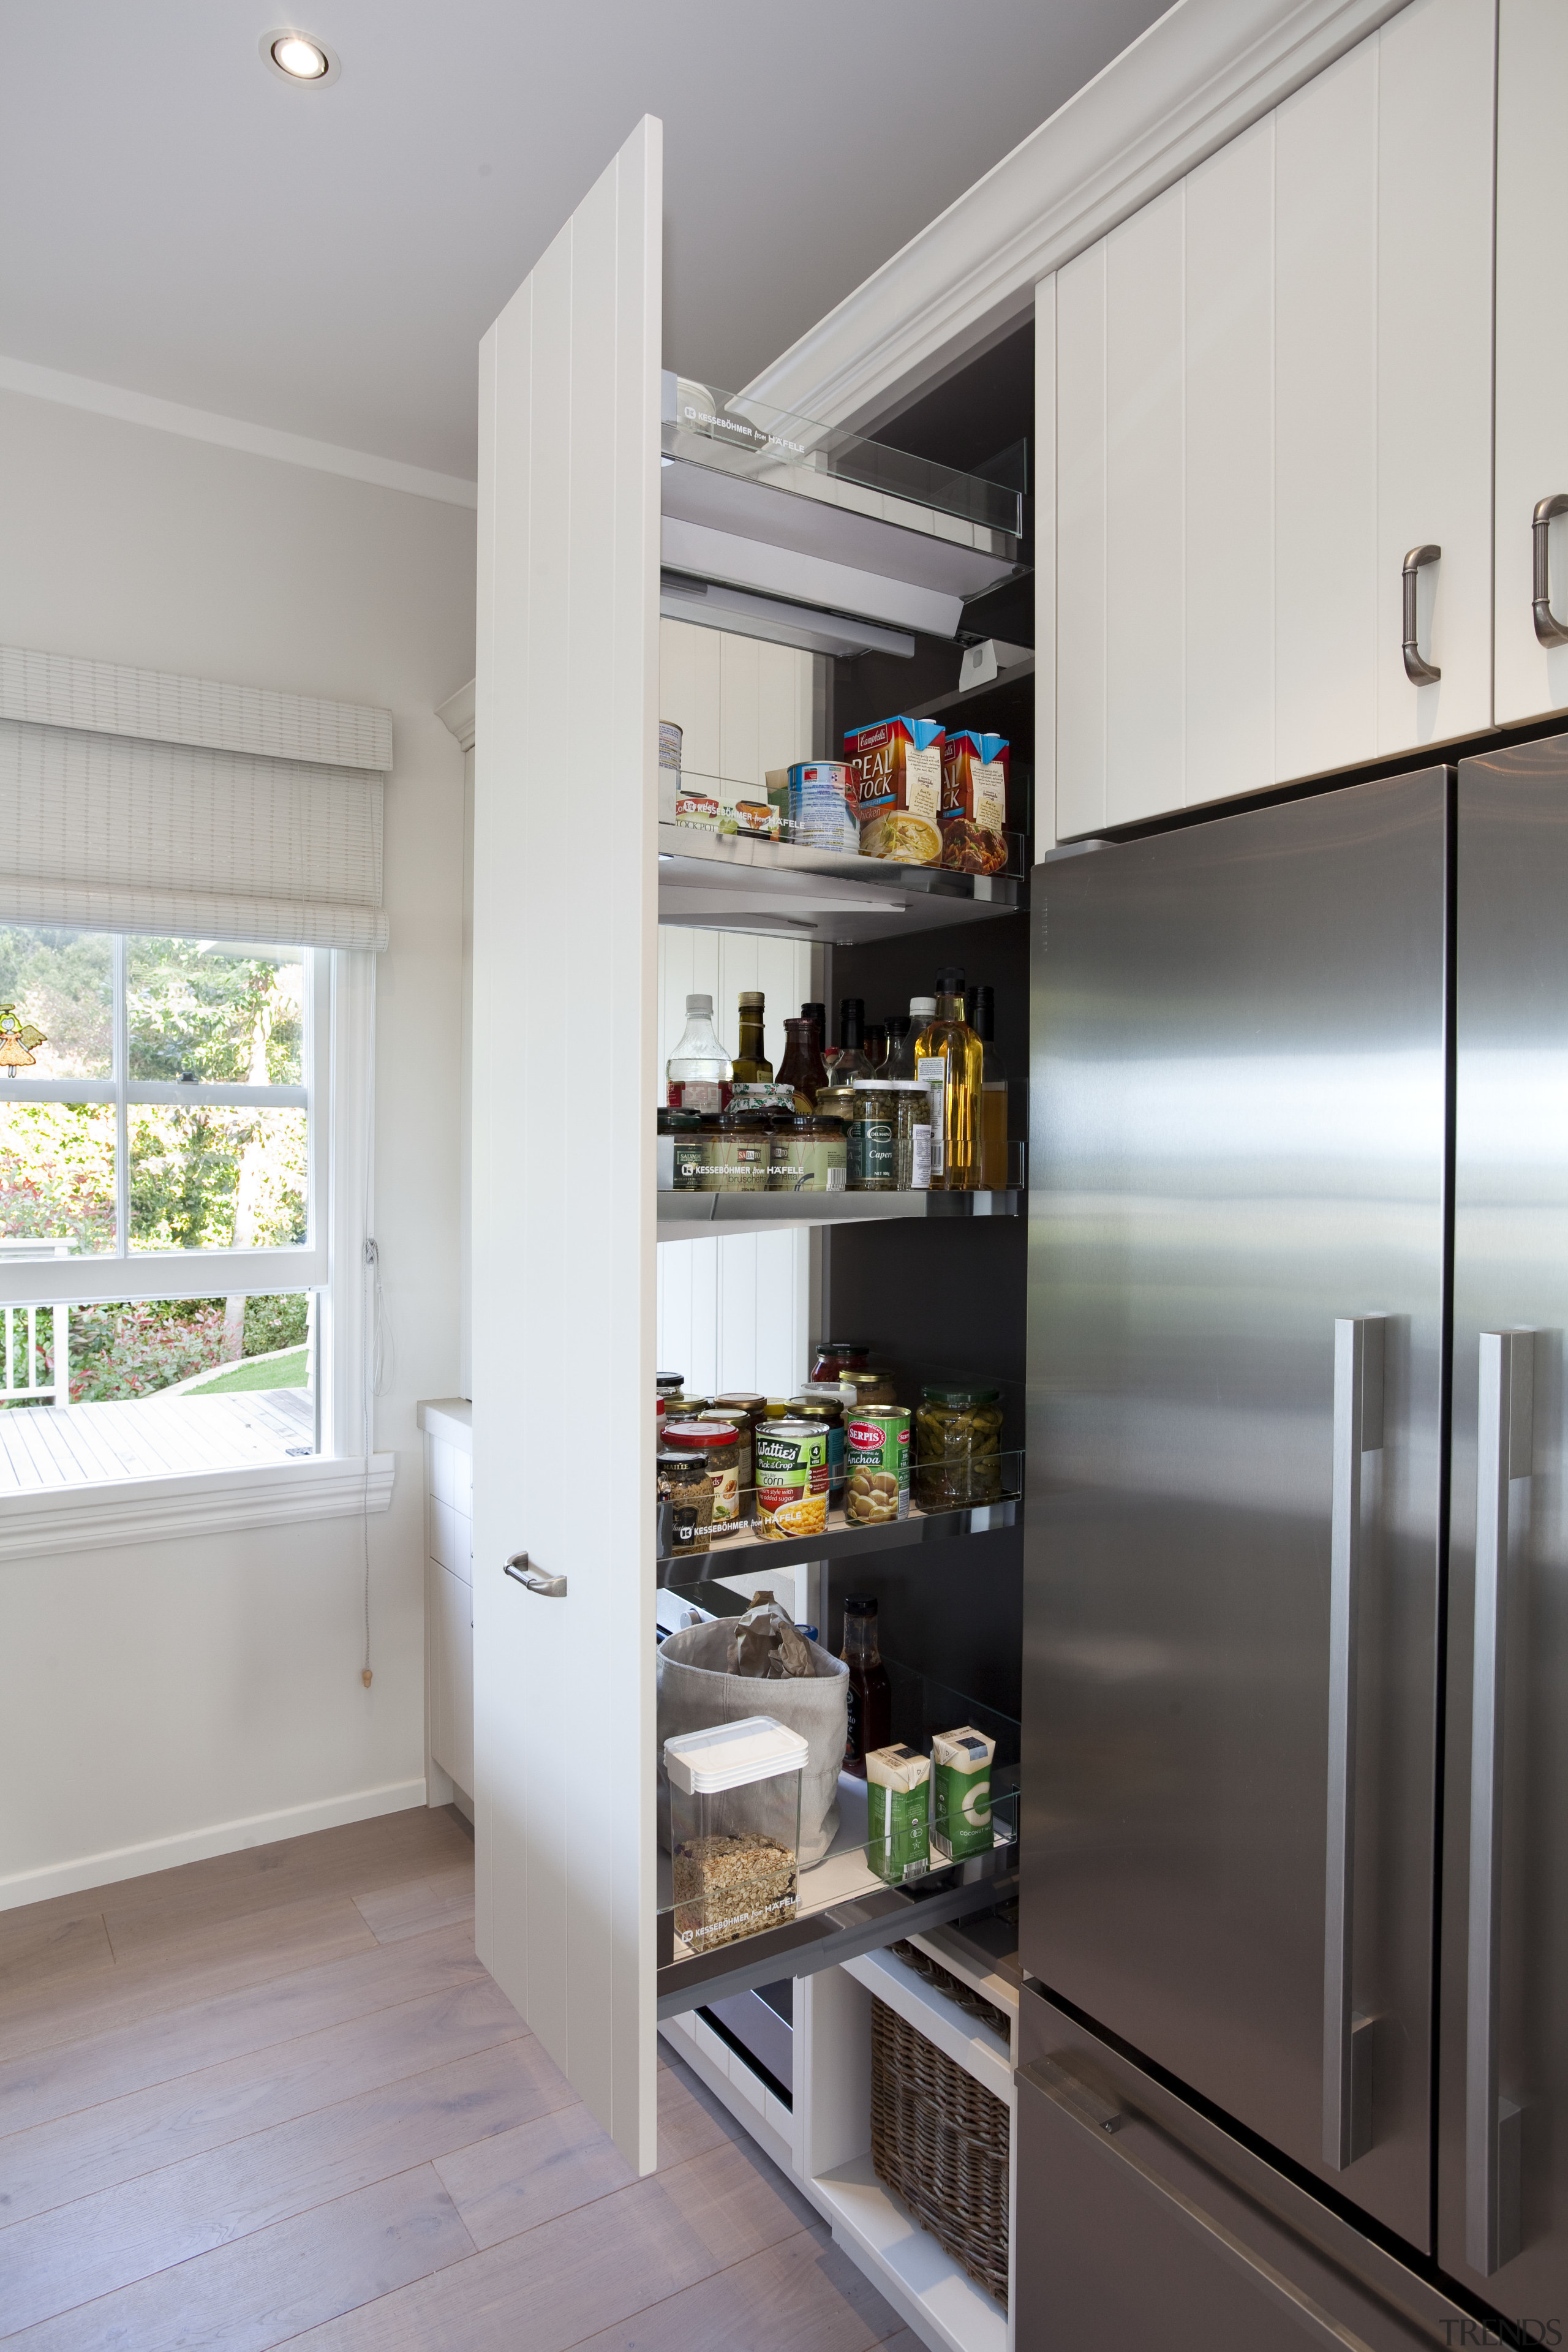 A close up view of the kitchen cabinetry cabinetry, countertop, home, home appliance, interior design, kitchen, refrigerator, shelf, gray